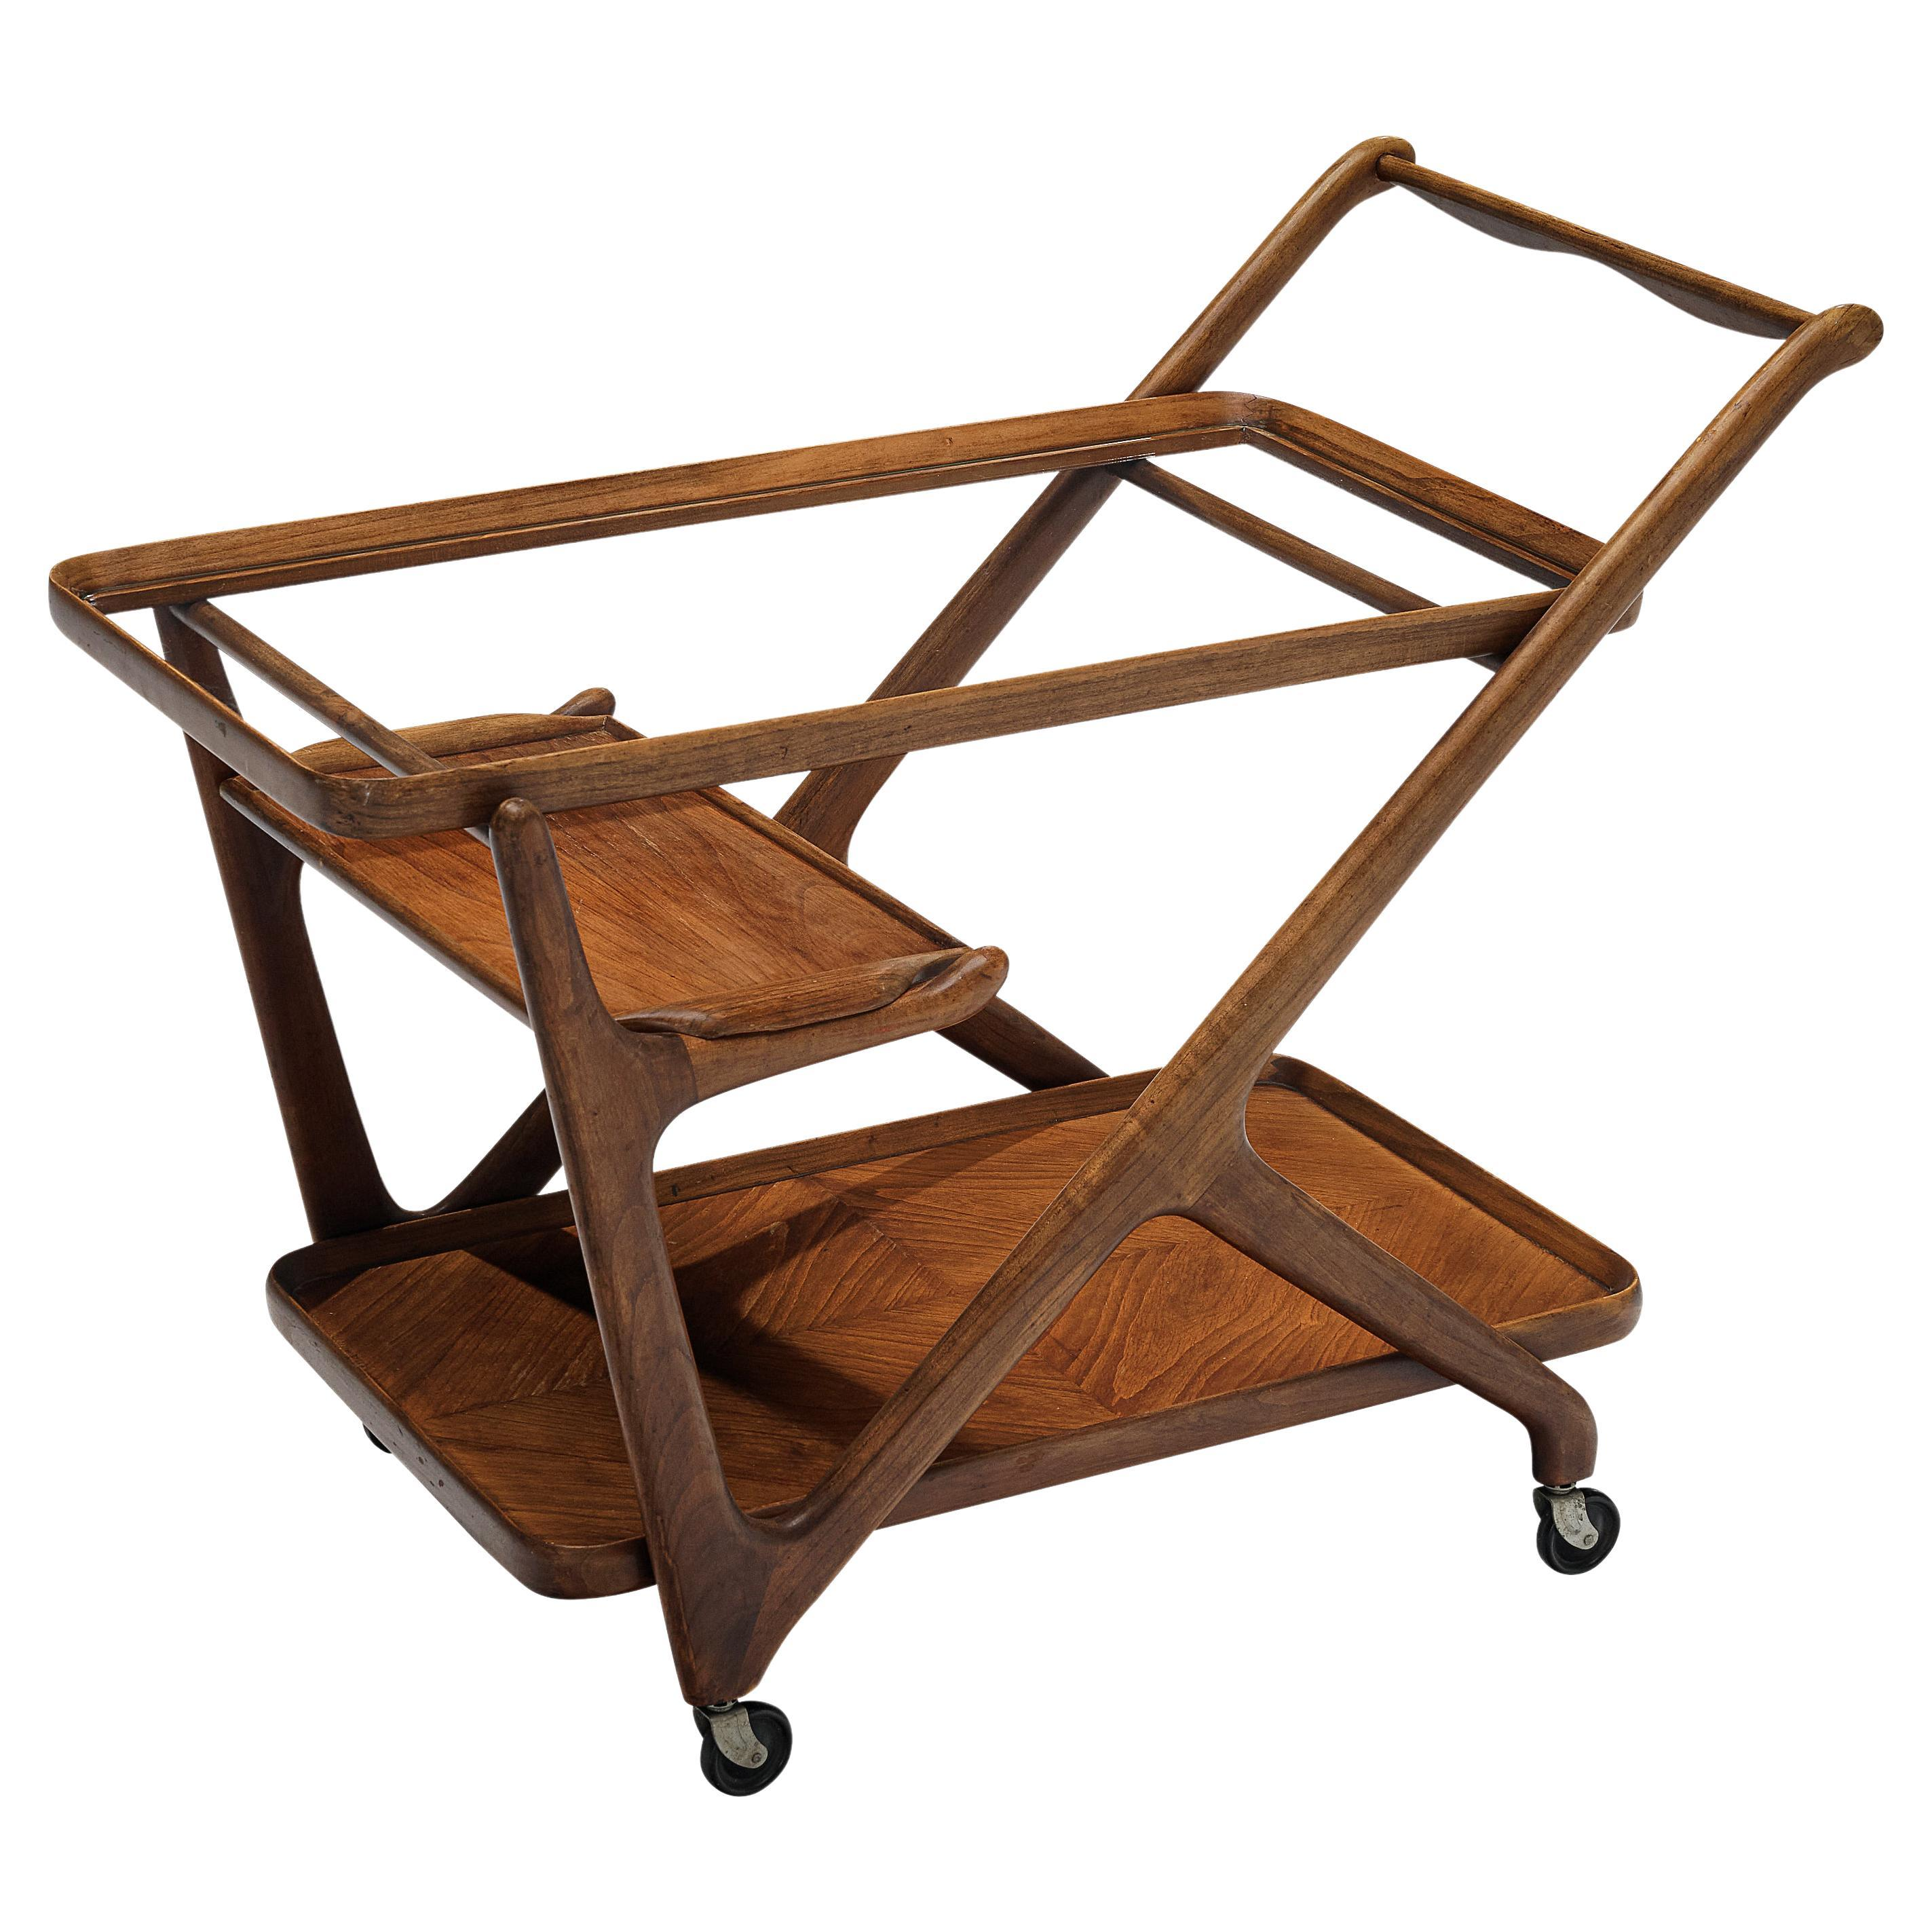 Cesare Lacca for Cassina Bar Cart or Serving Trolley